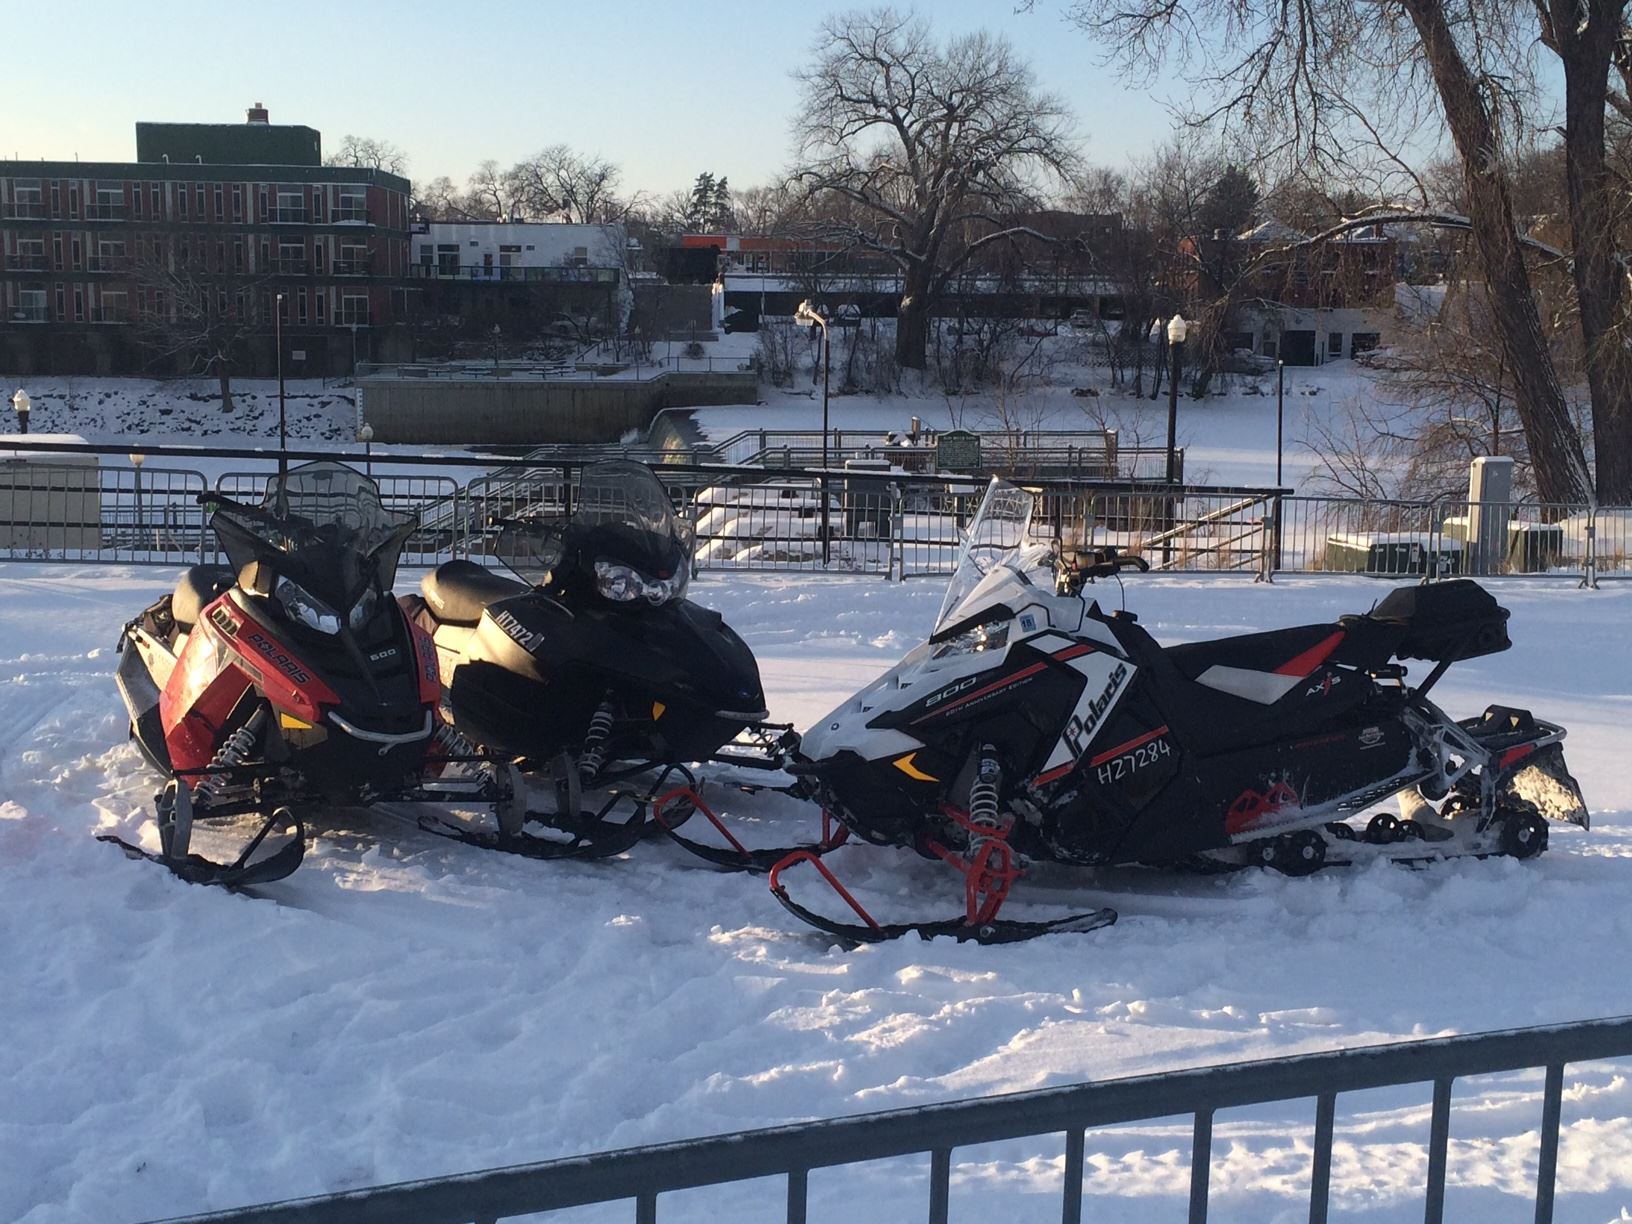 Three Snowmobiles Parked by Each Other